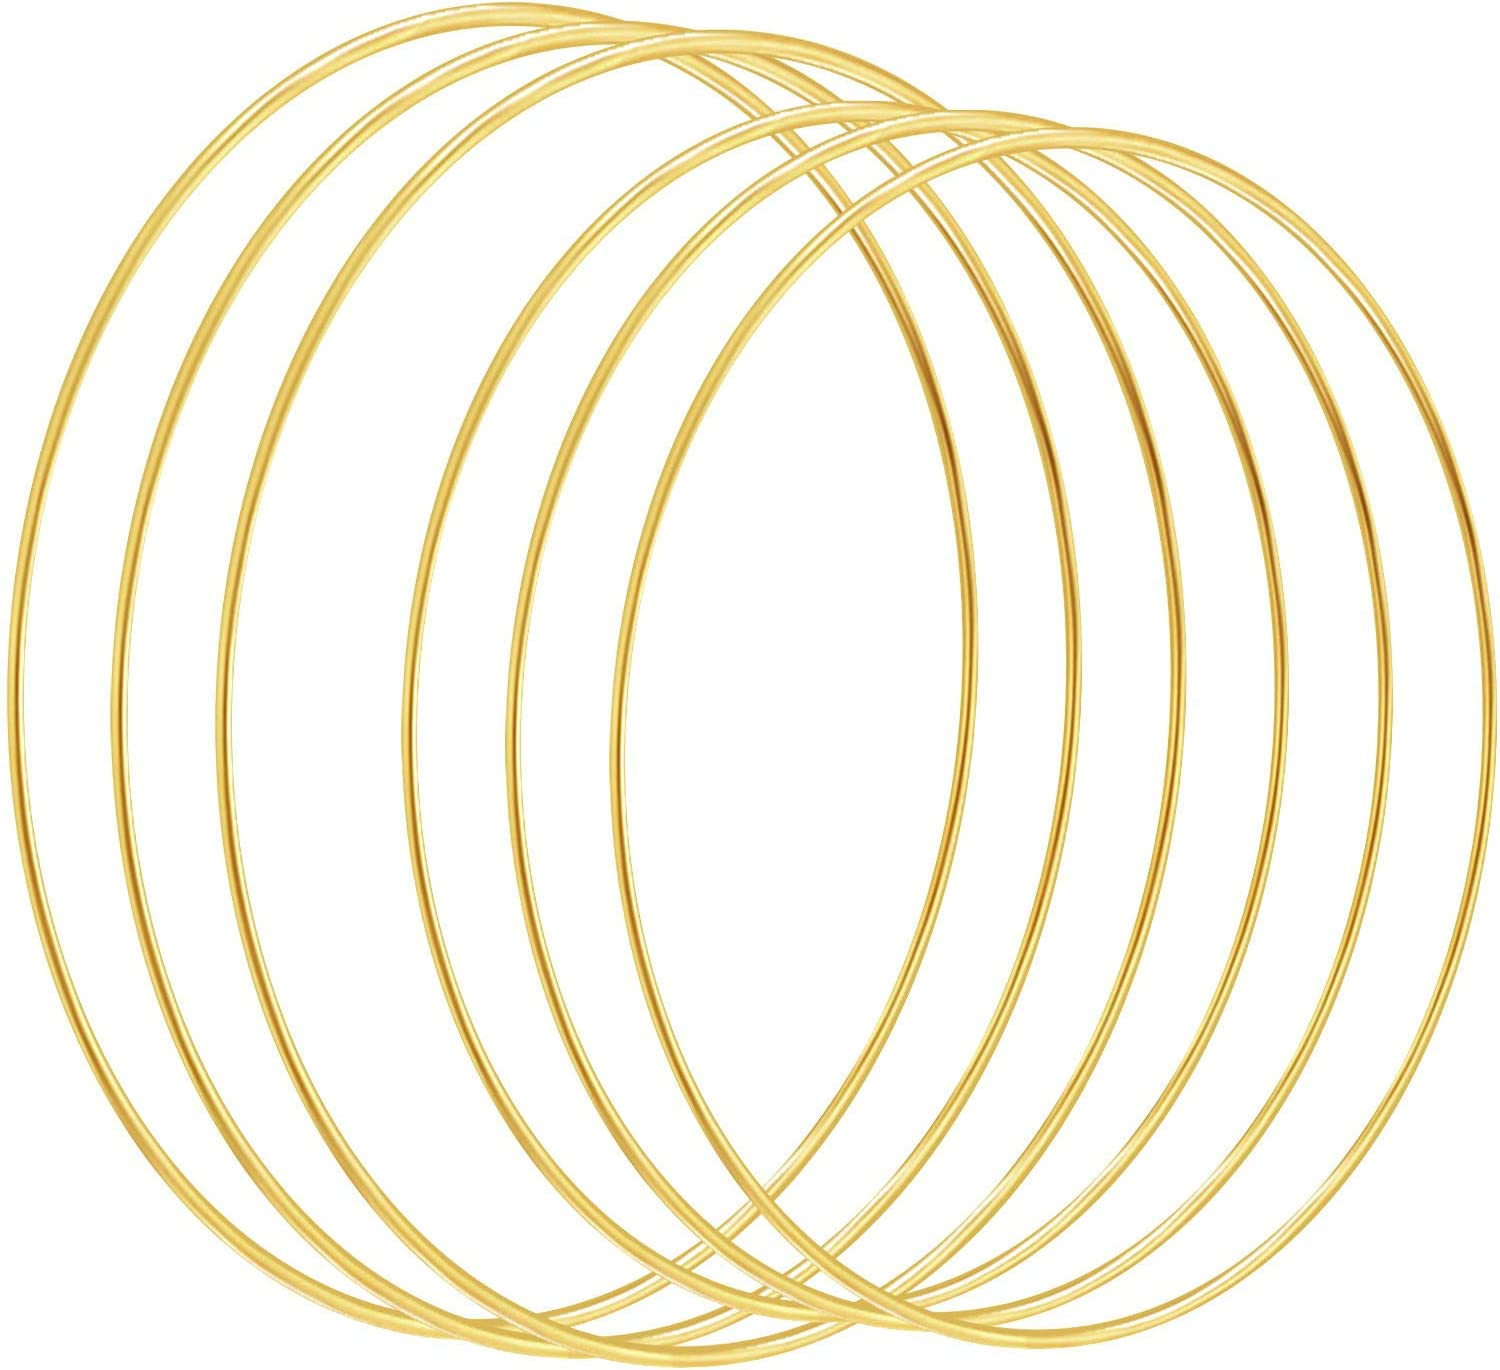 3 mm x 20 Inches, 3 mm x 16 Inches Macrame Supplies and Crafts Home Decor Thanksgiving Christmas Wreath Baby Mobile 6 Pieces Large DIY Wreath Gold Metal Rings for Wedding